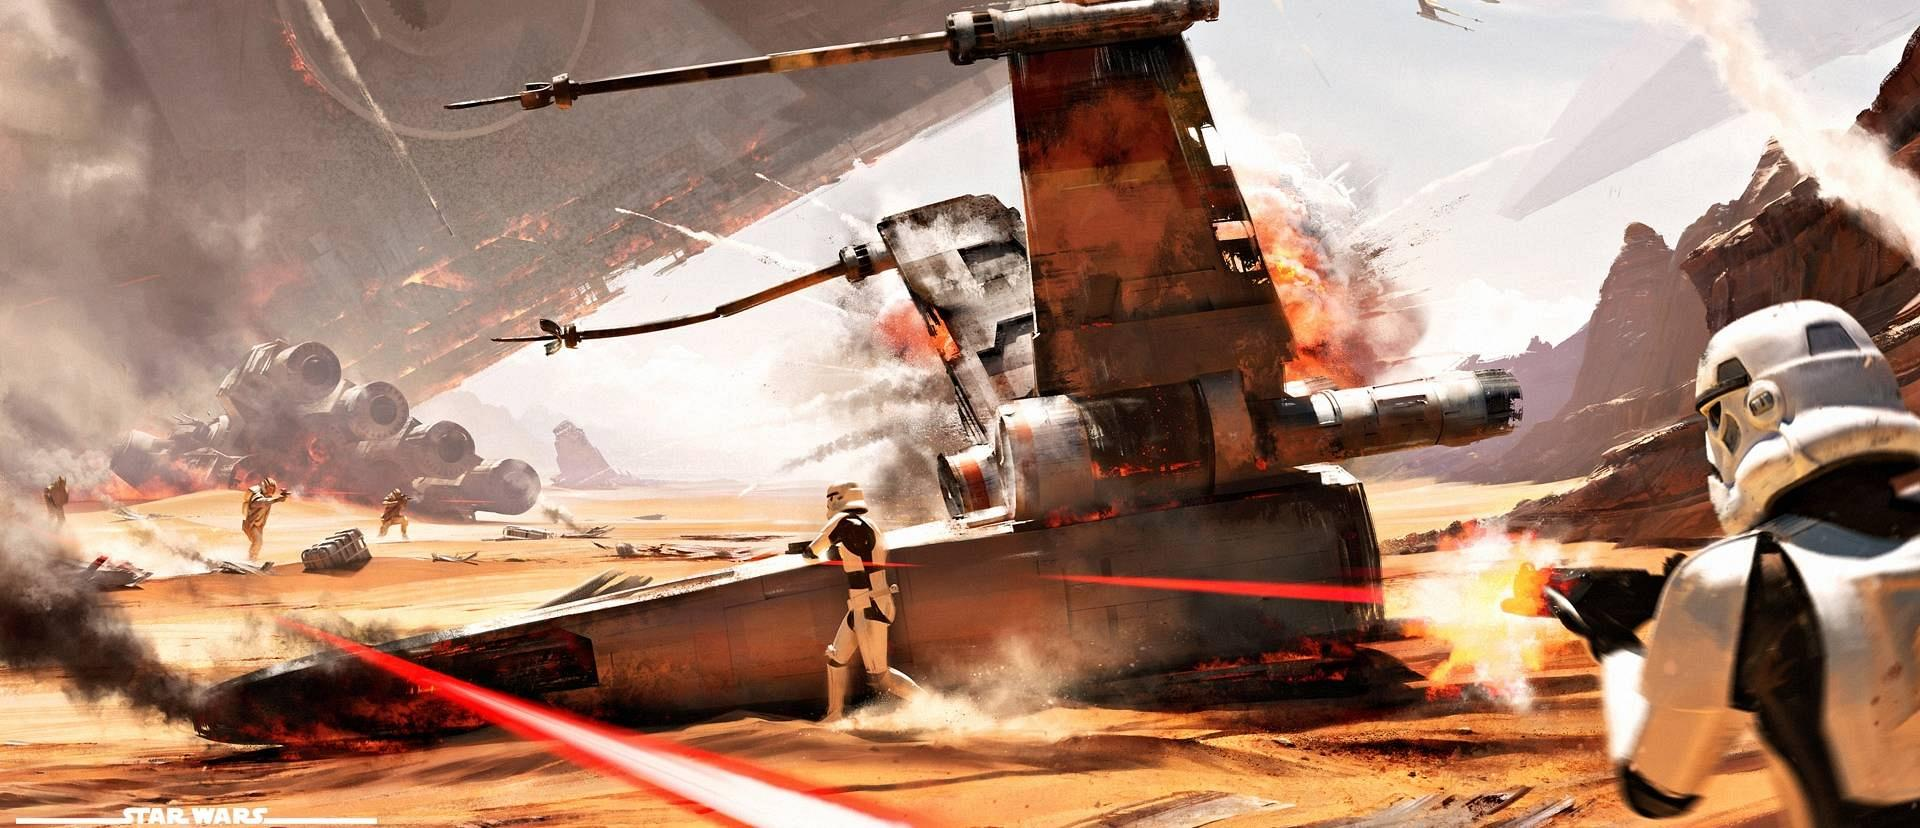 Star Wars: Battlefront-Battle of Jakku